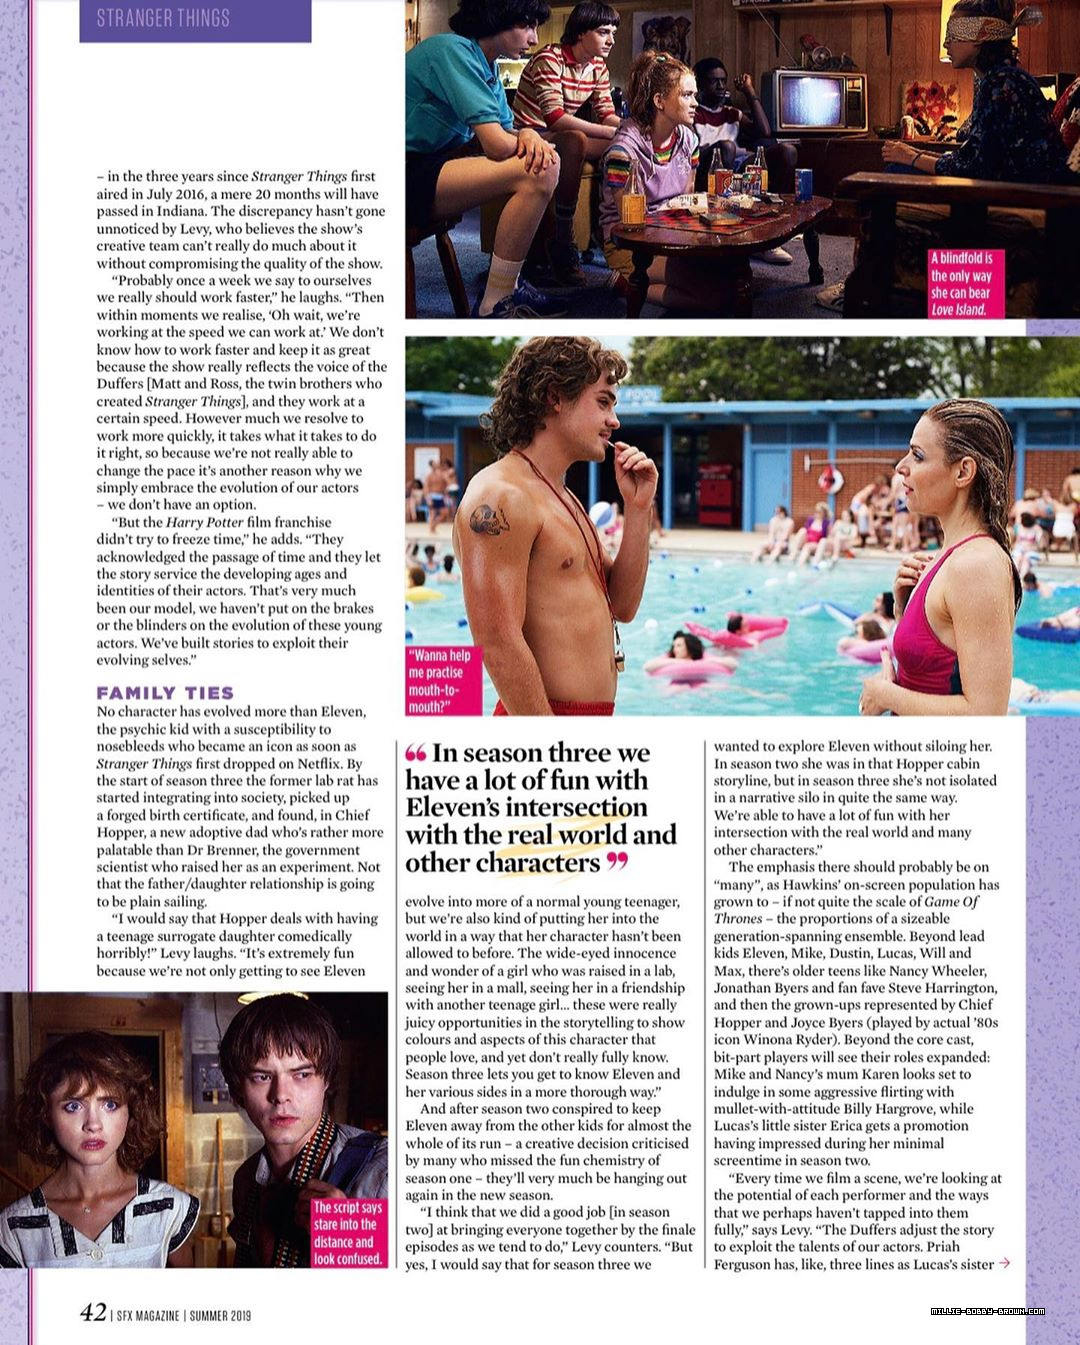 Stranger Things in SFX Magazine - Summer 2019 [5]